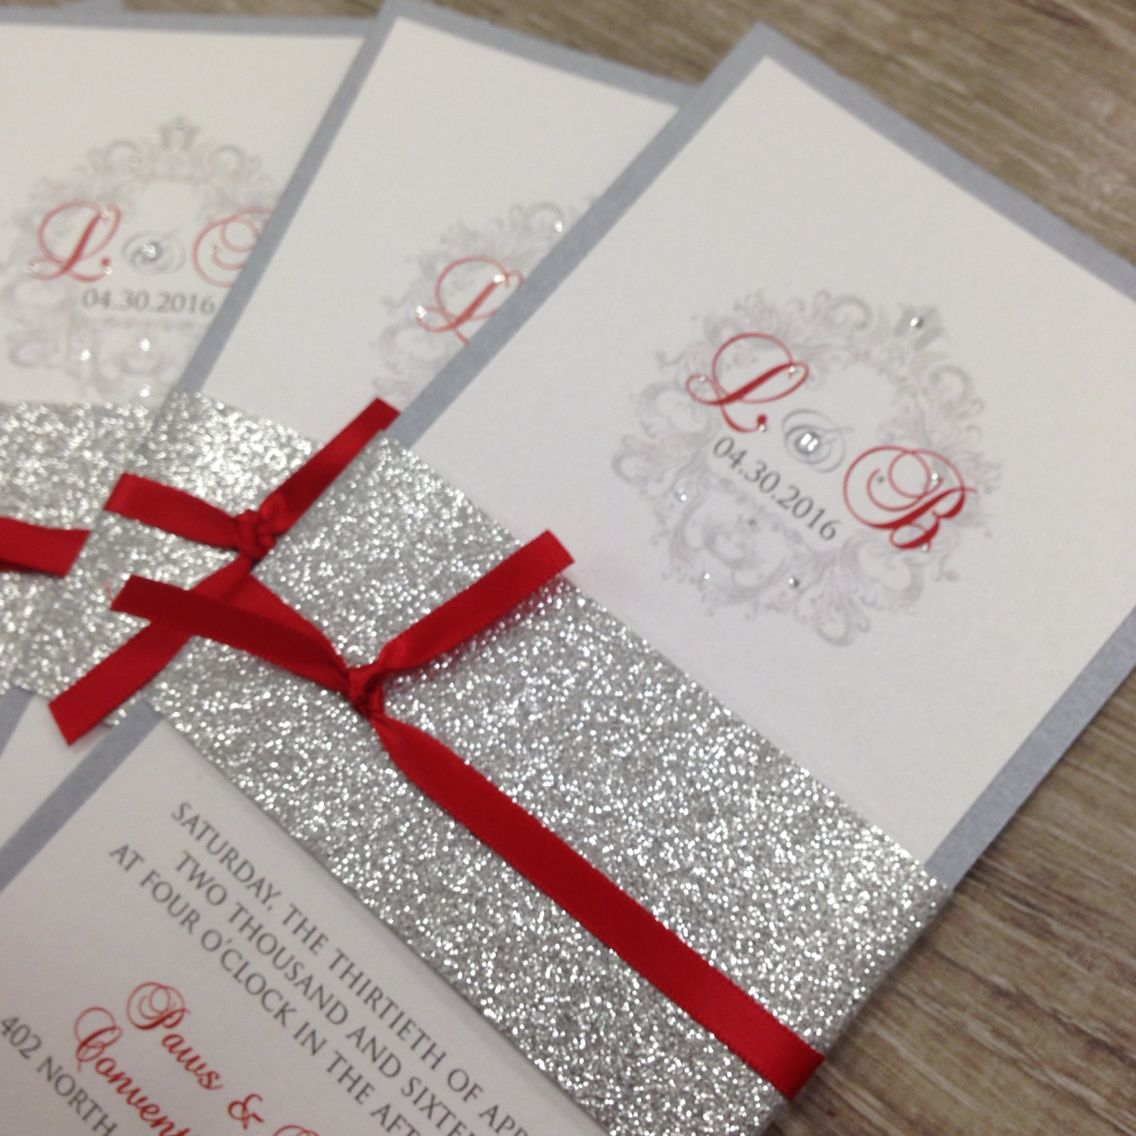 Printable Wedding Invitations Designs With Red And Silver: Red Silver And White Glitter Wedding Invitations